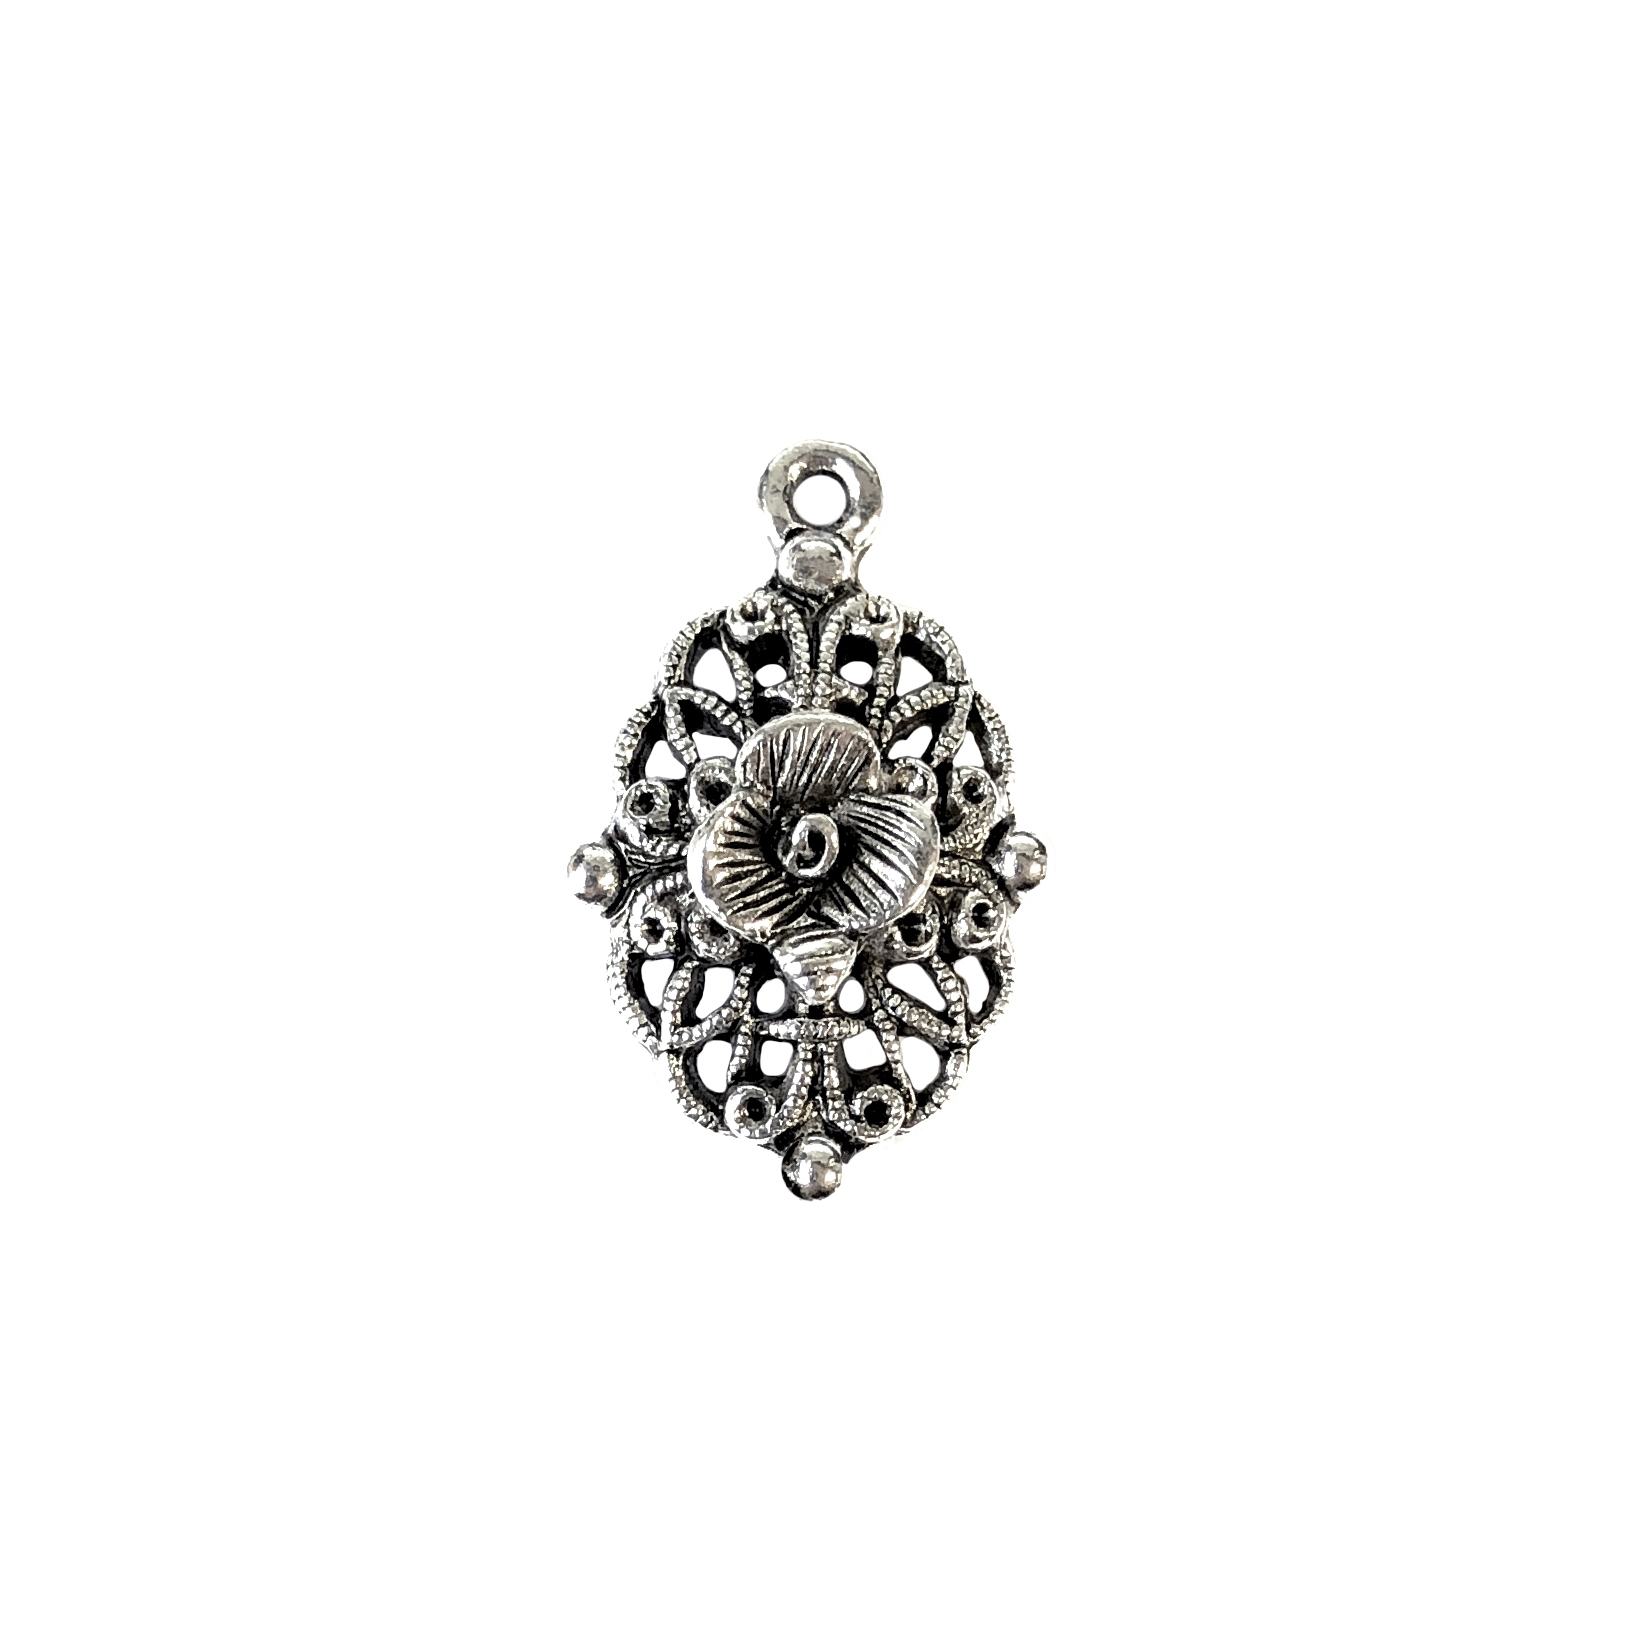 filigree flower charm, old silver pewter, B'sue by 1928,  jewelry charm, flower, floral, charm, filigree, drop, filigree drop, silver, lead-free pewter, silver finish, US-made, designer jewelry, vintage supplies, B'sue Boutiques, 24x15mm, 01039